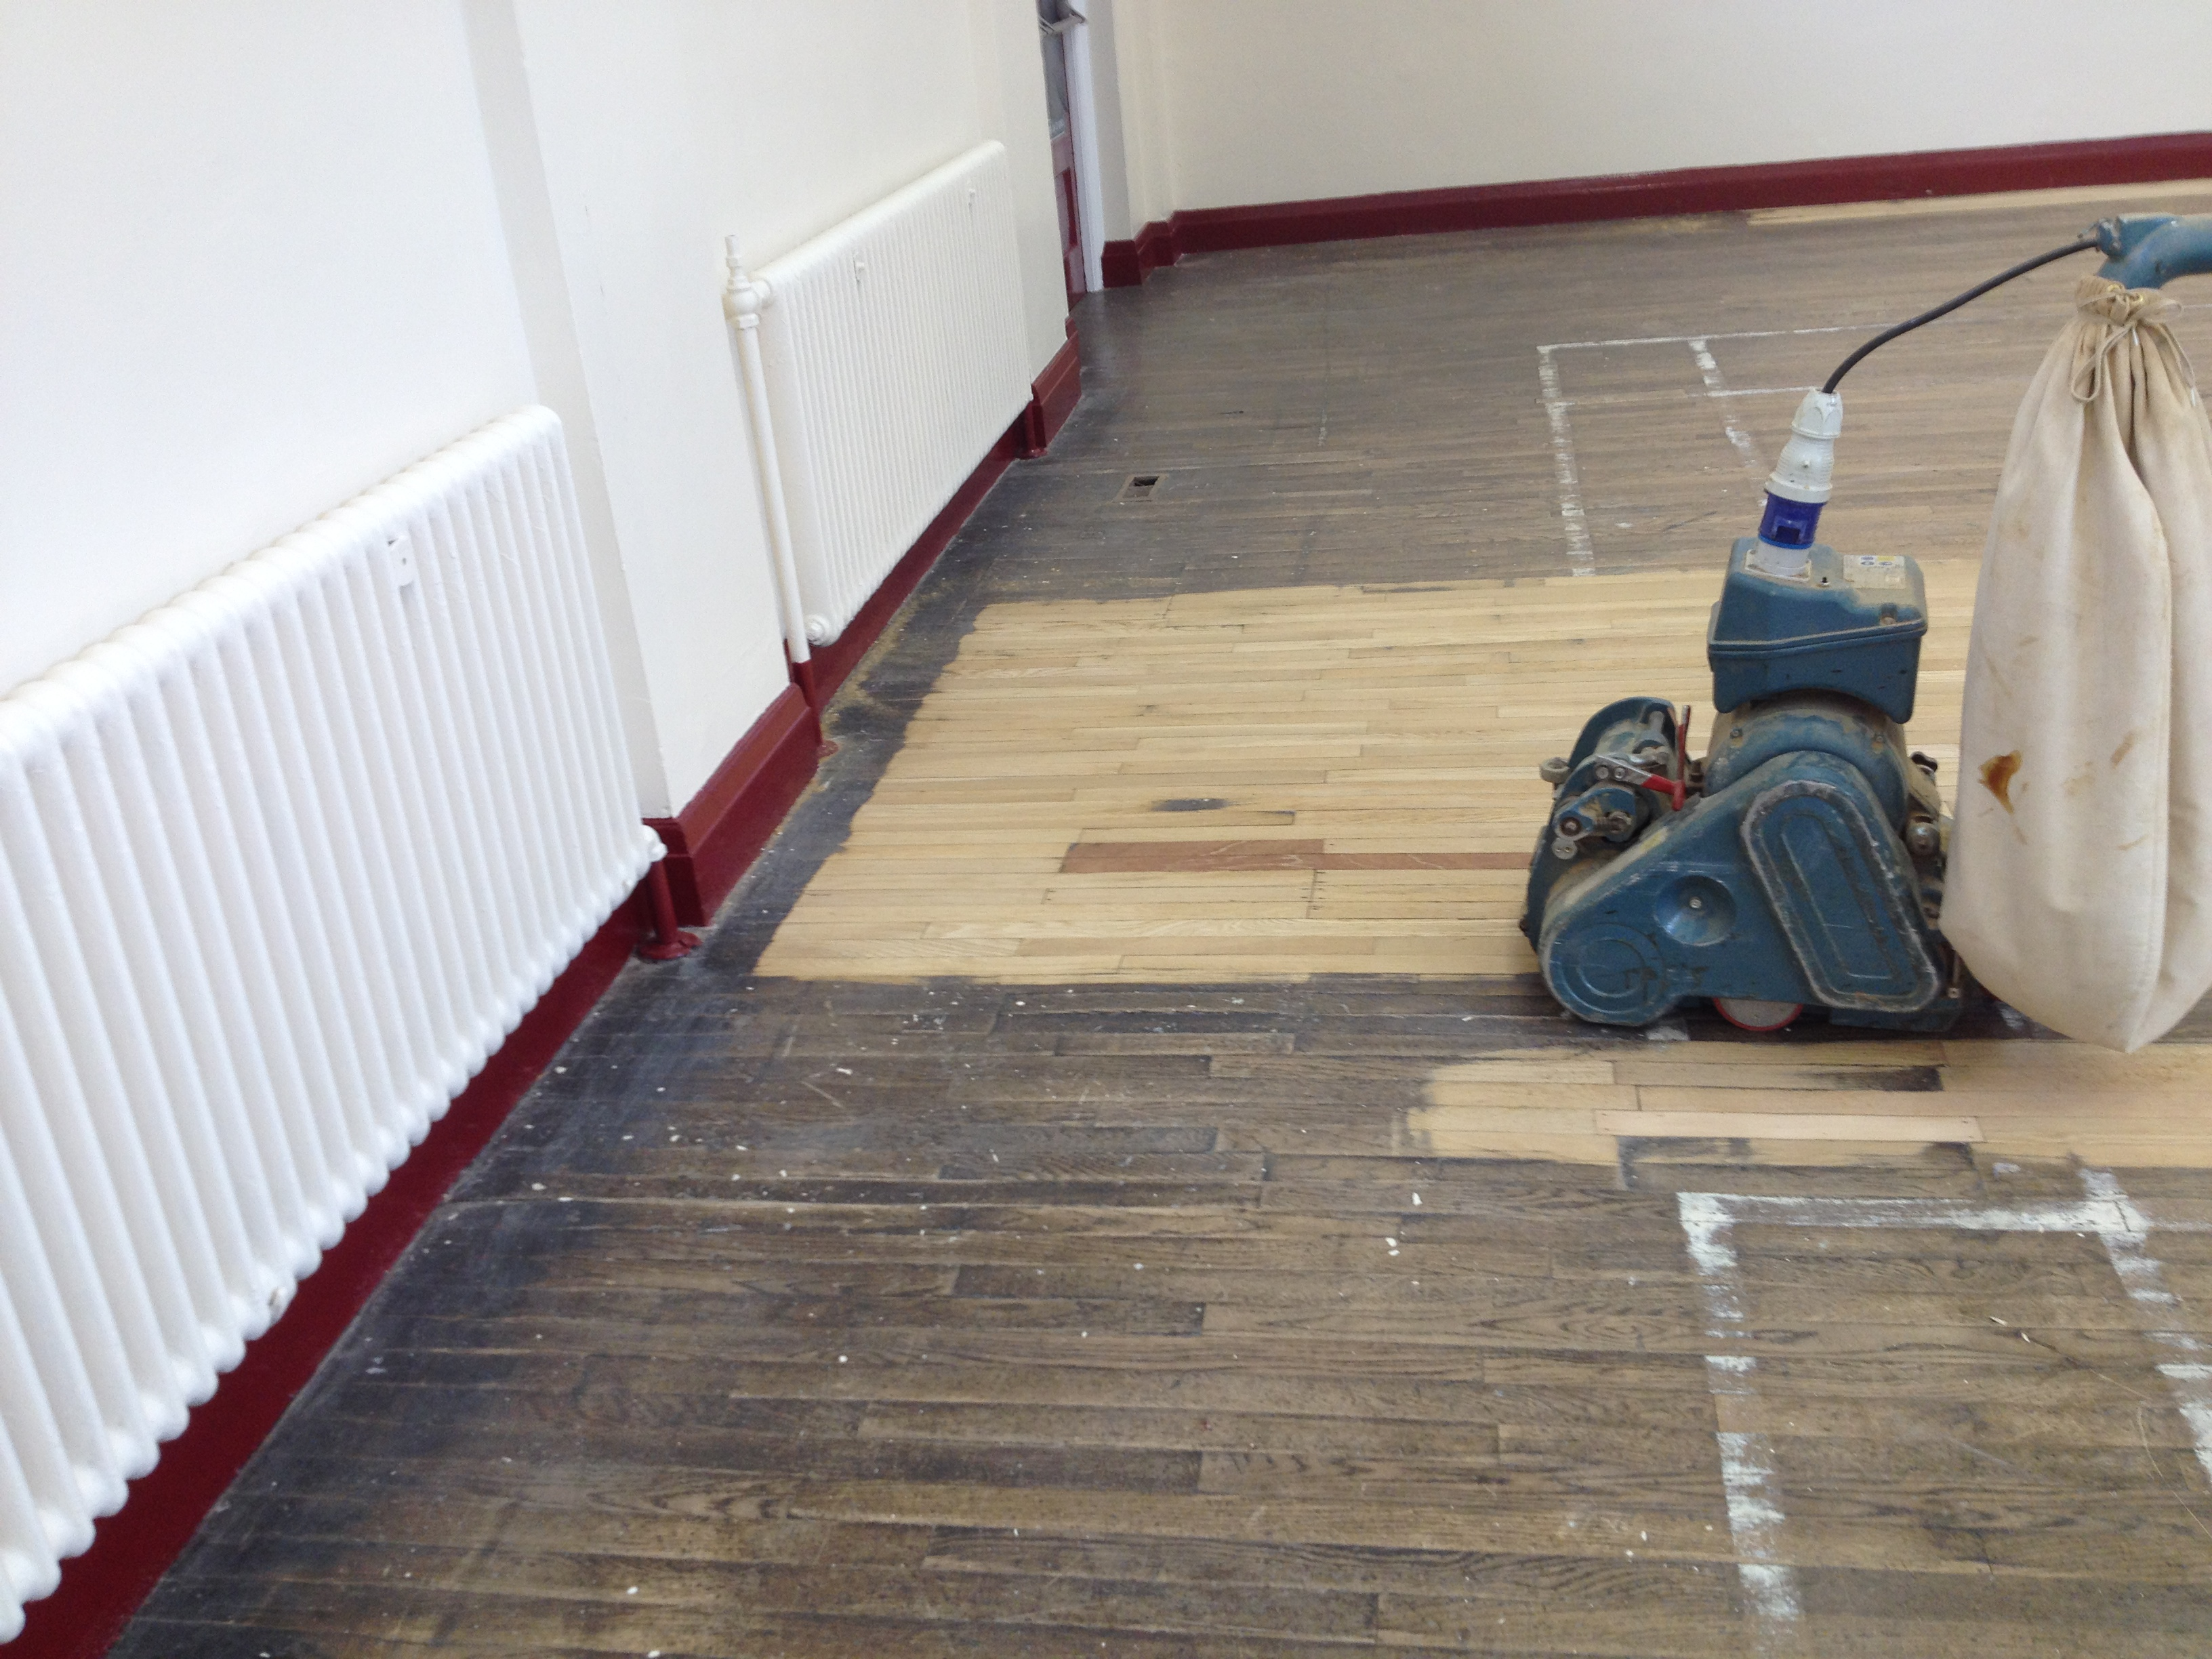 school floor. School Floor Sanding - Removing Old Surface Finish